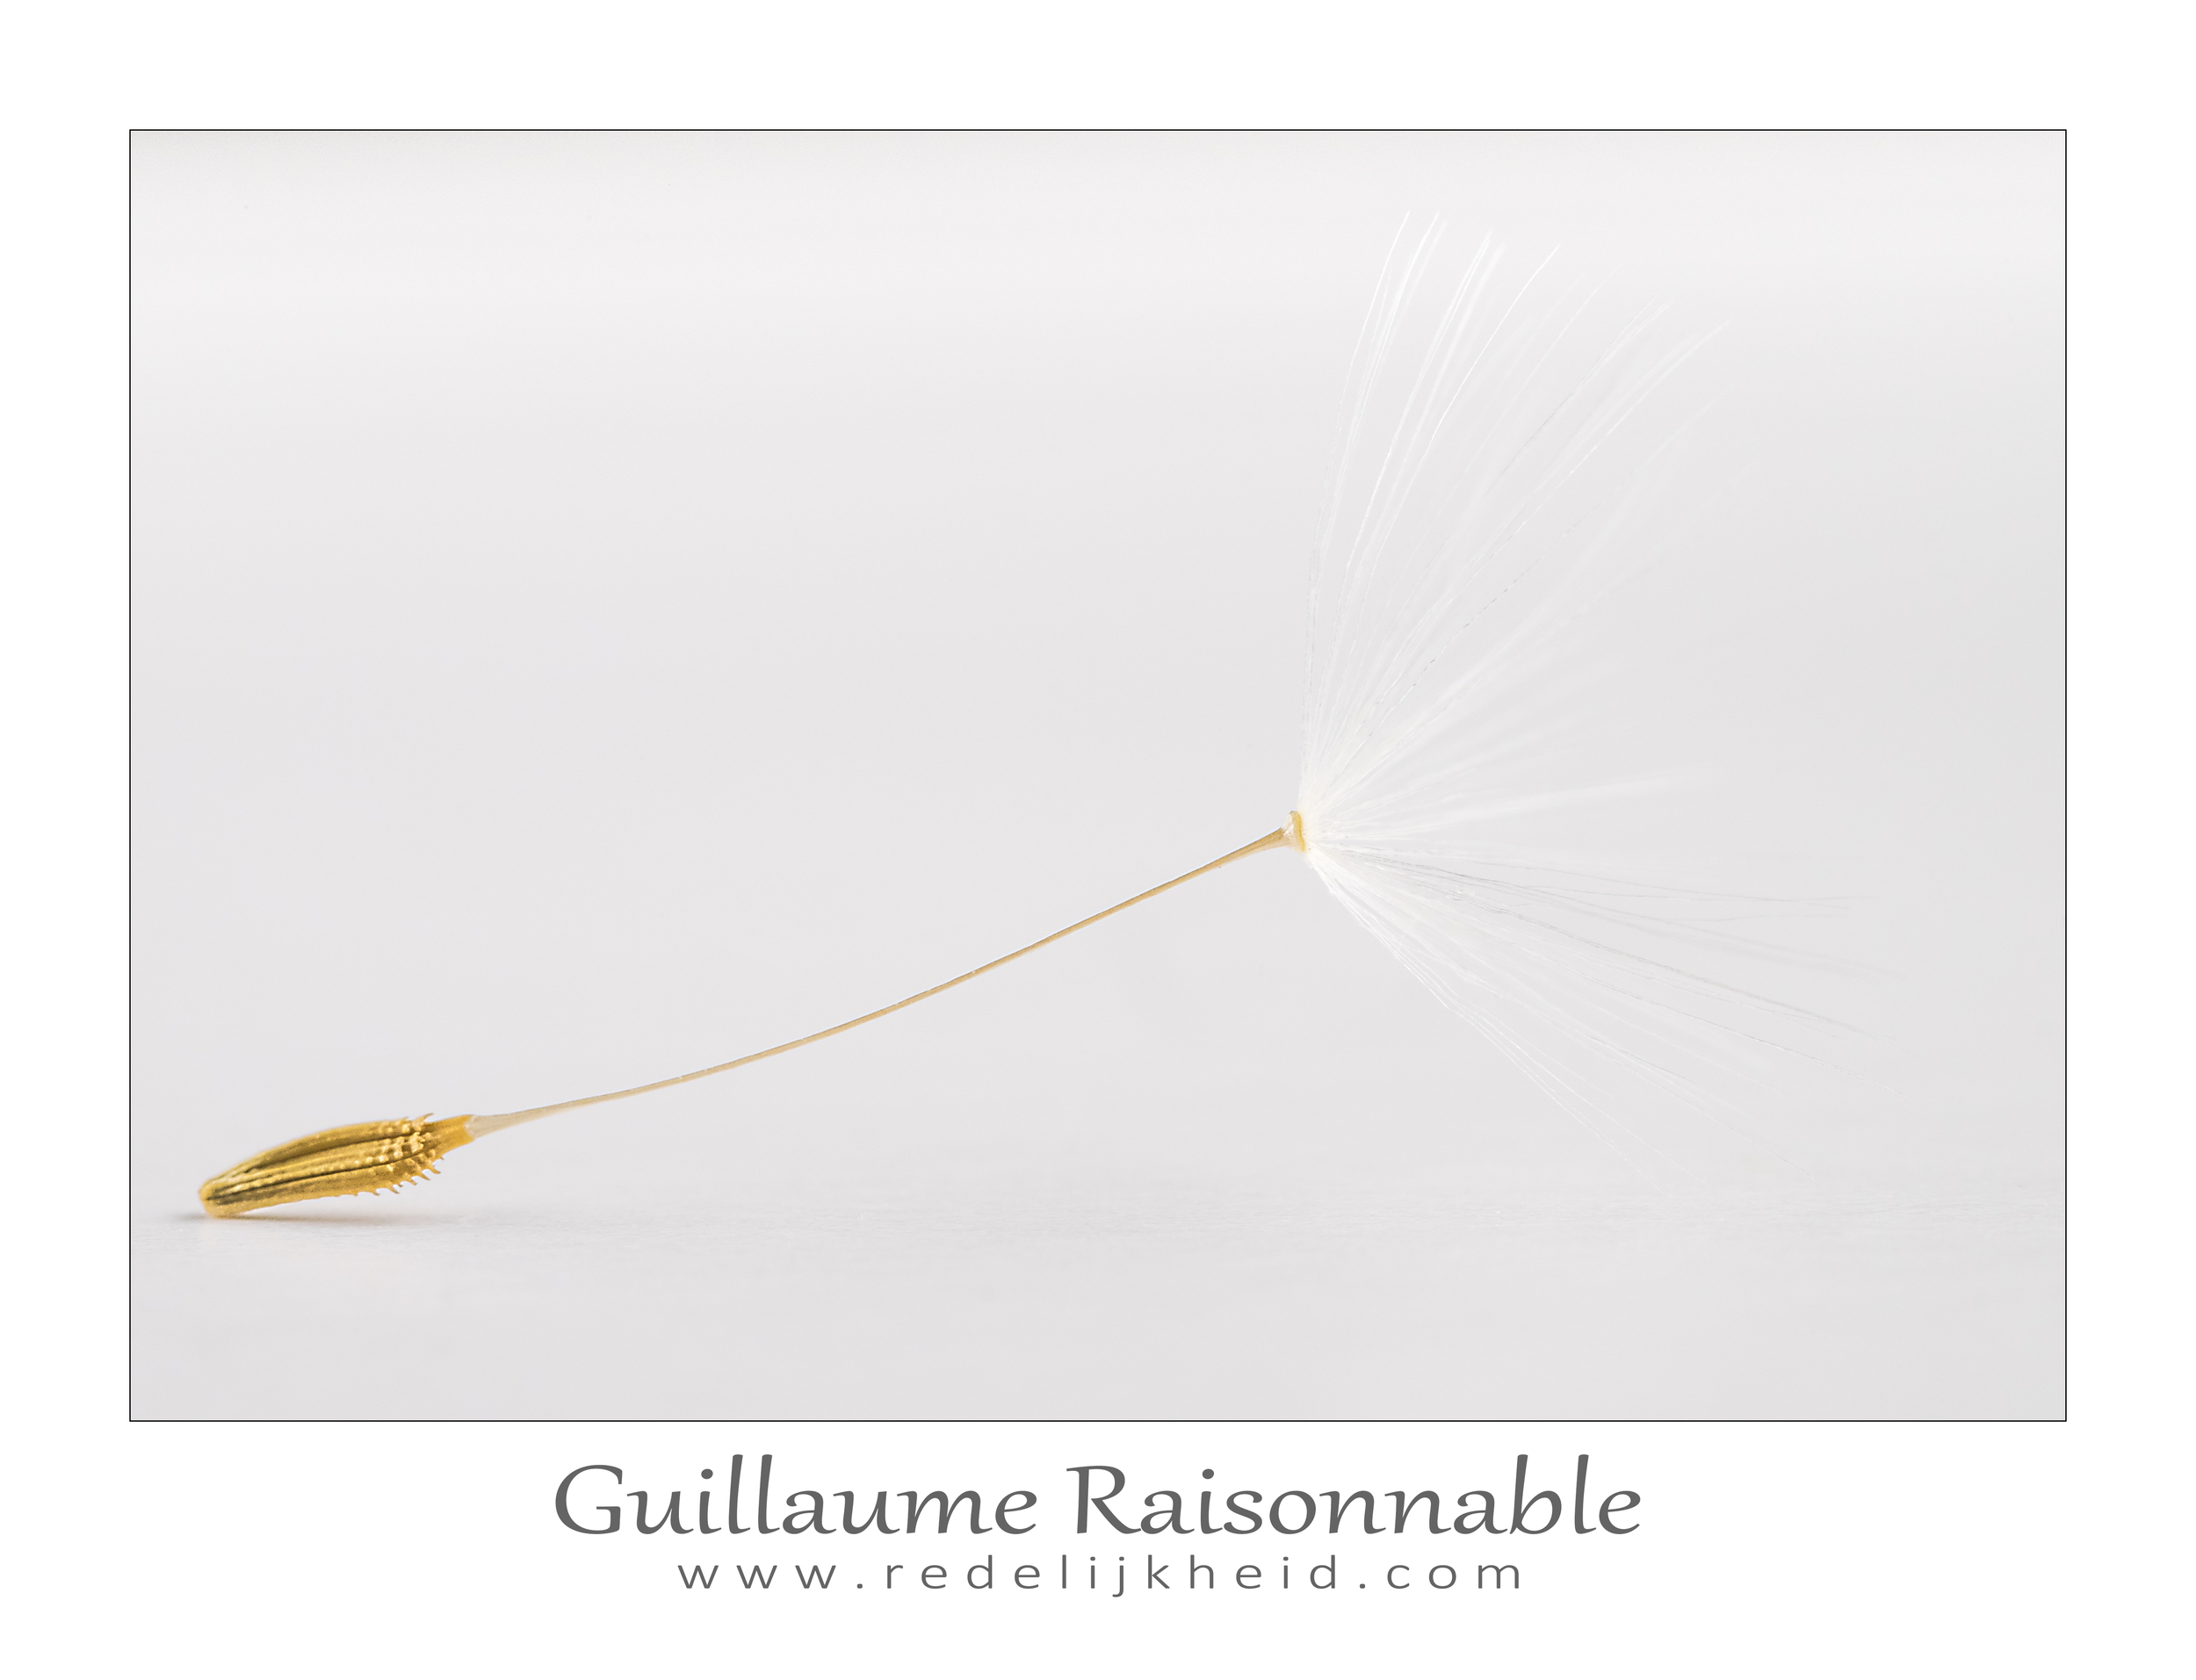 Dandelion seed against a white background